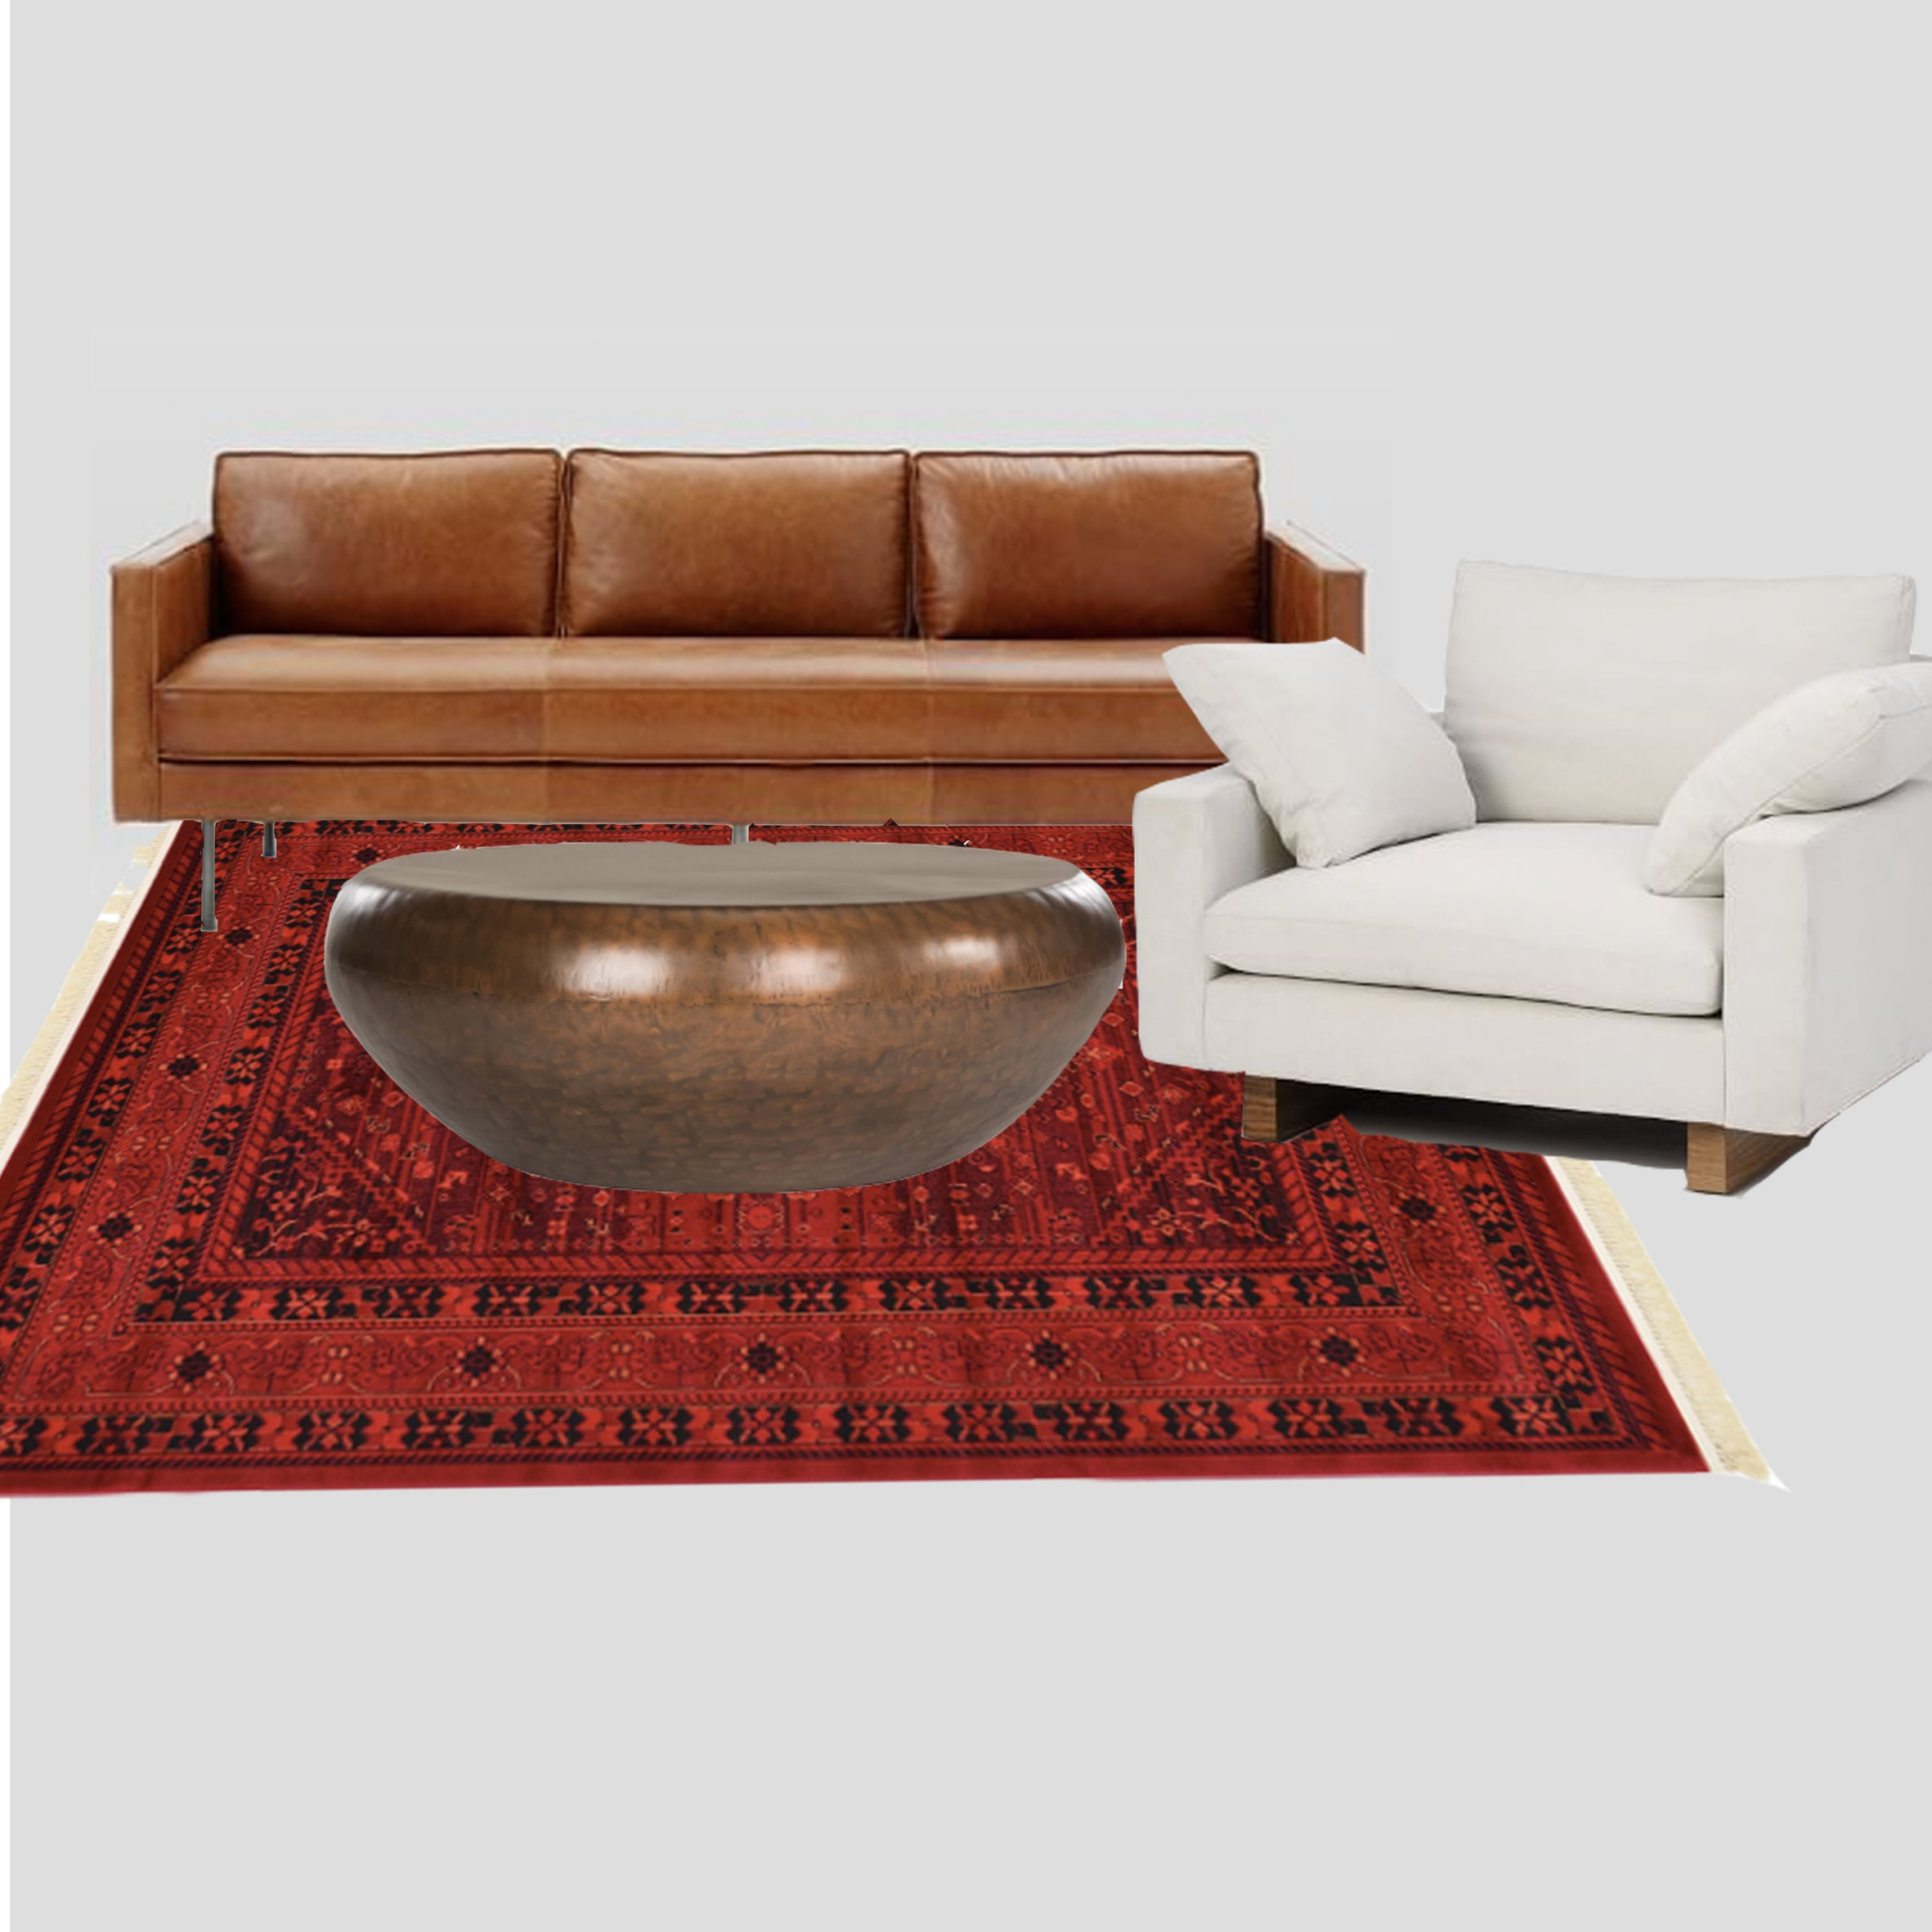 Couch, chair, coffee table, and rug